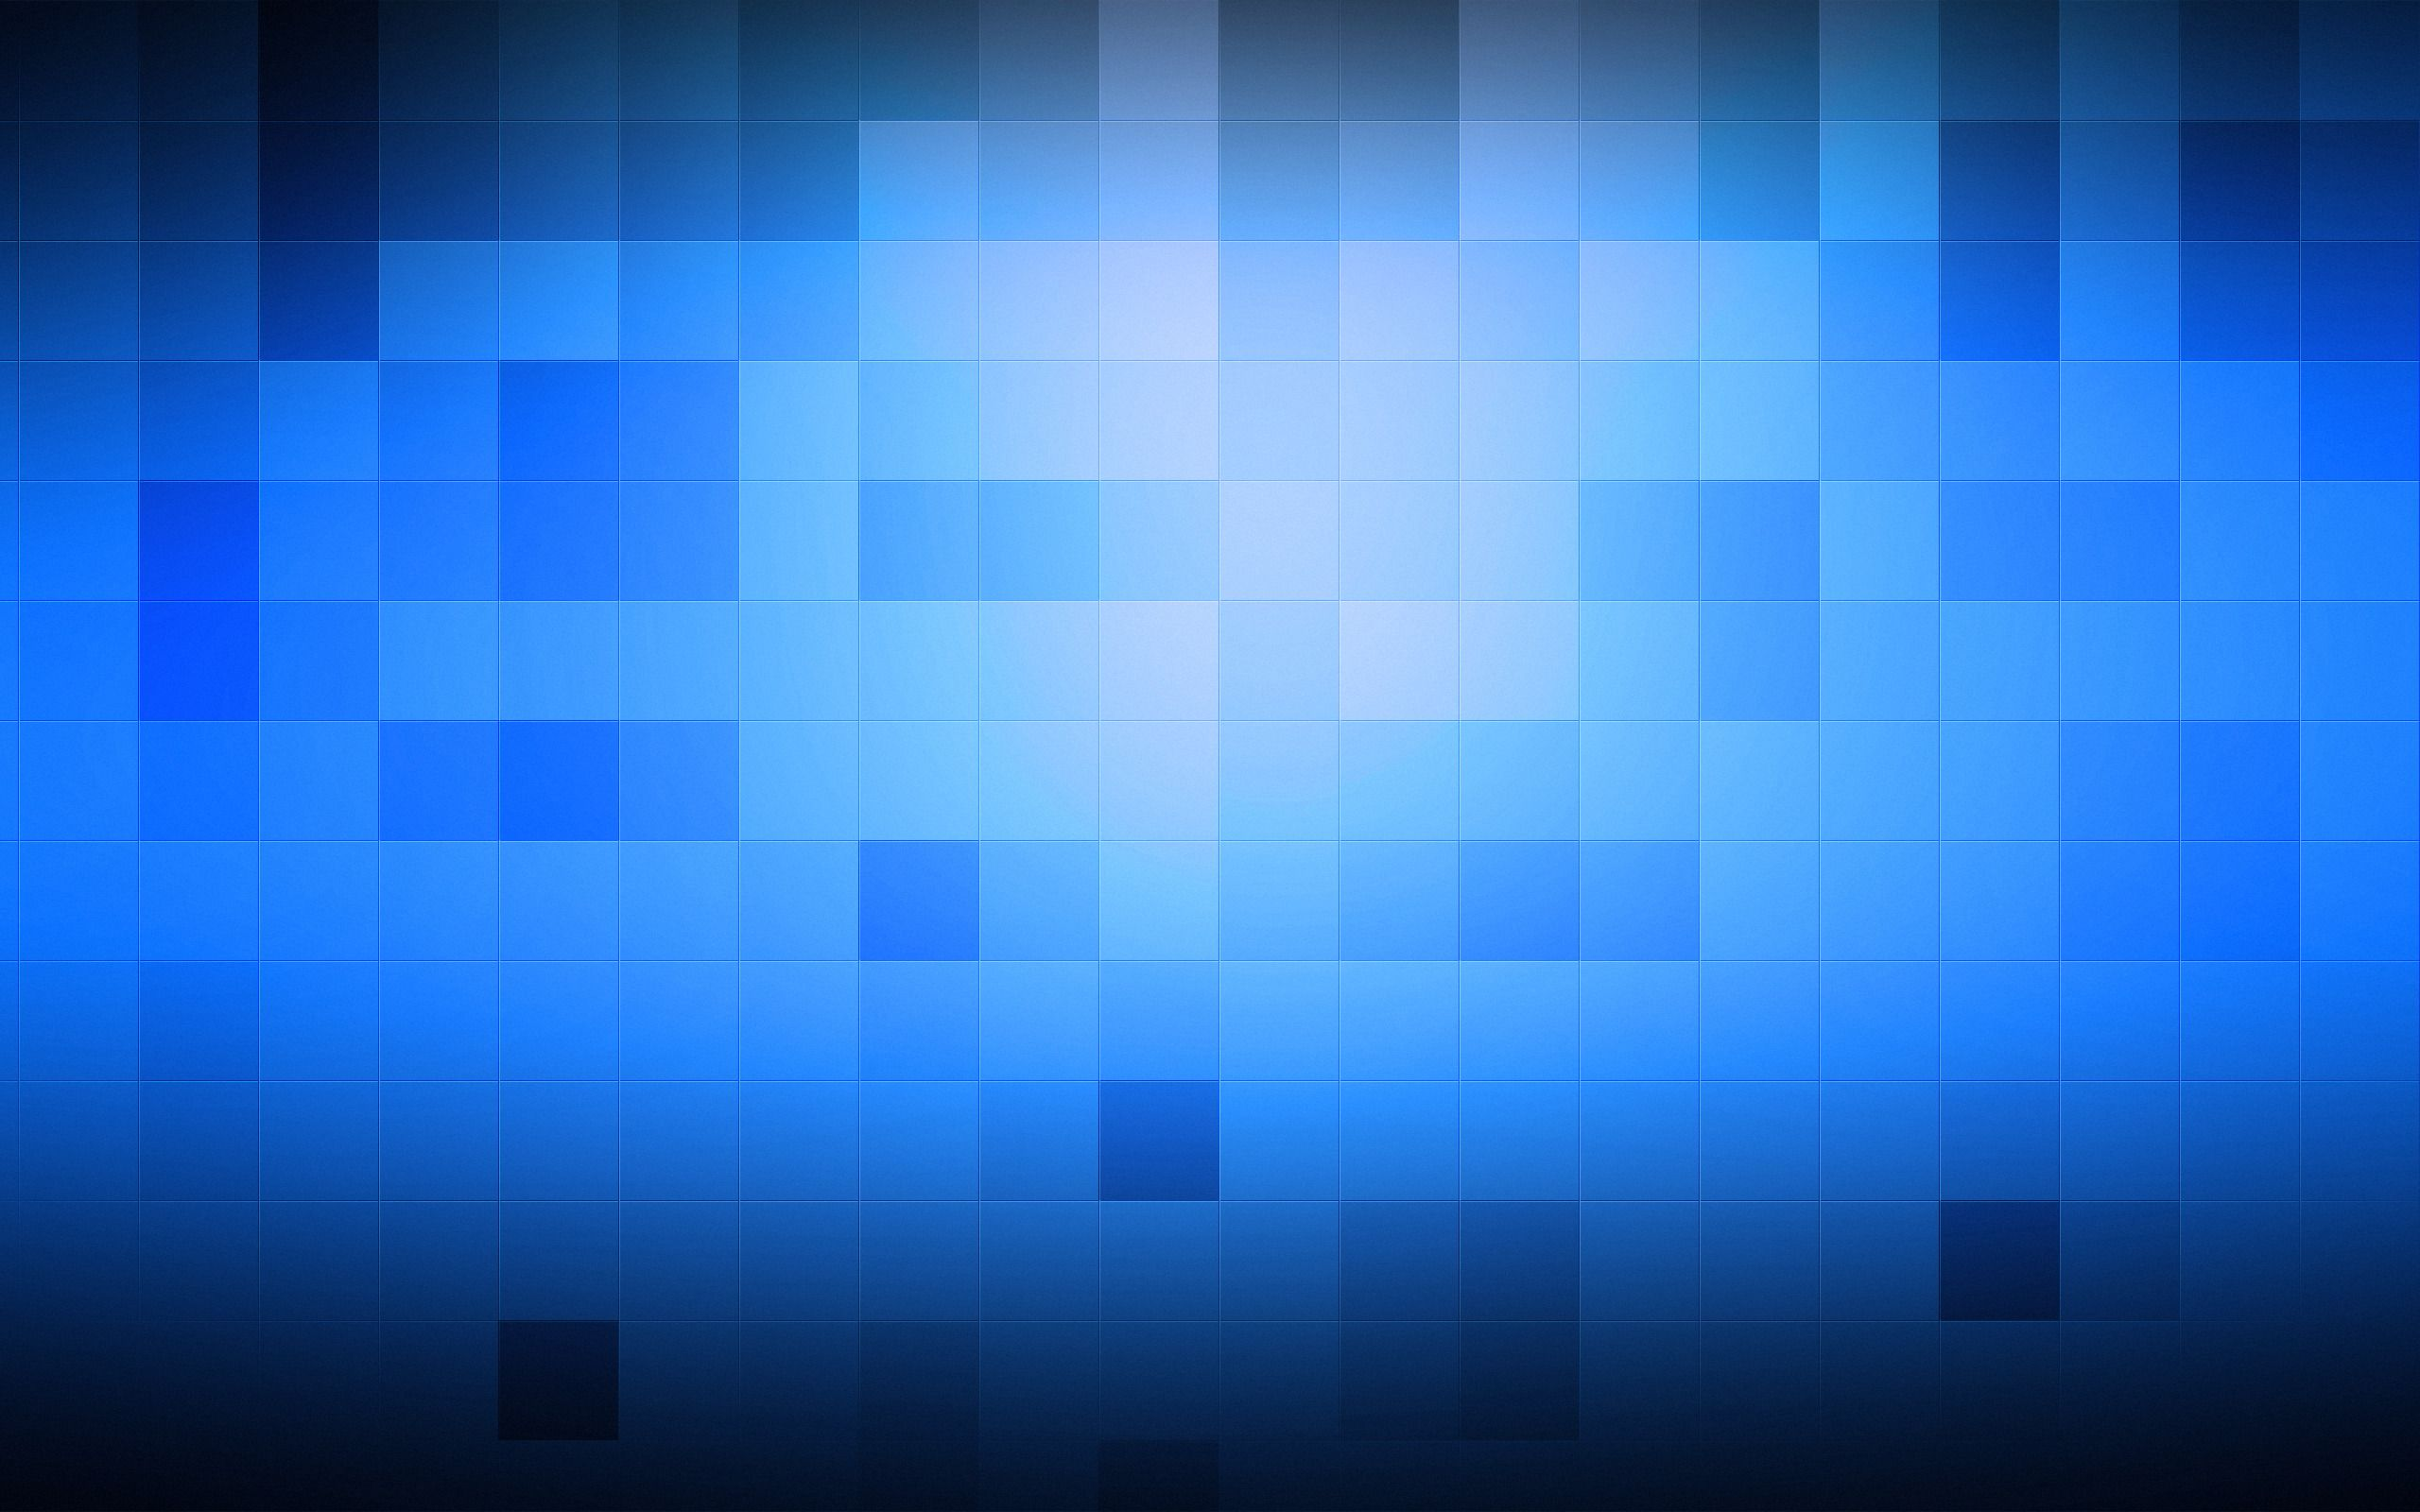 Blue abstract background hd wallpapers in abstract imagesci hd blue abstract background hd wallpapers in abstract imagesci voltagebd Images